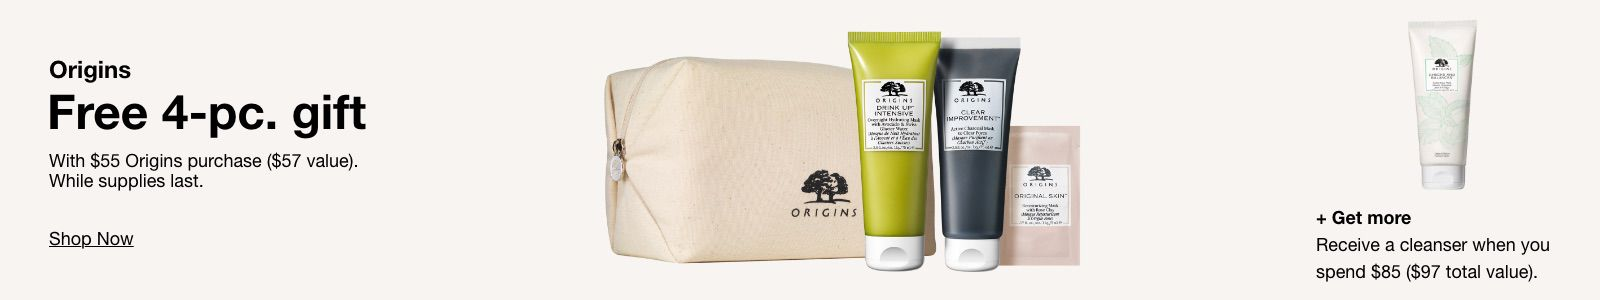 Origins, Free 4-pc, gift, With $55 Origins purchase ($57 value), Shop Now, + Get more